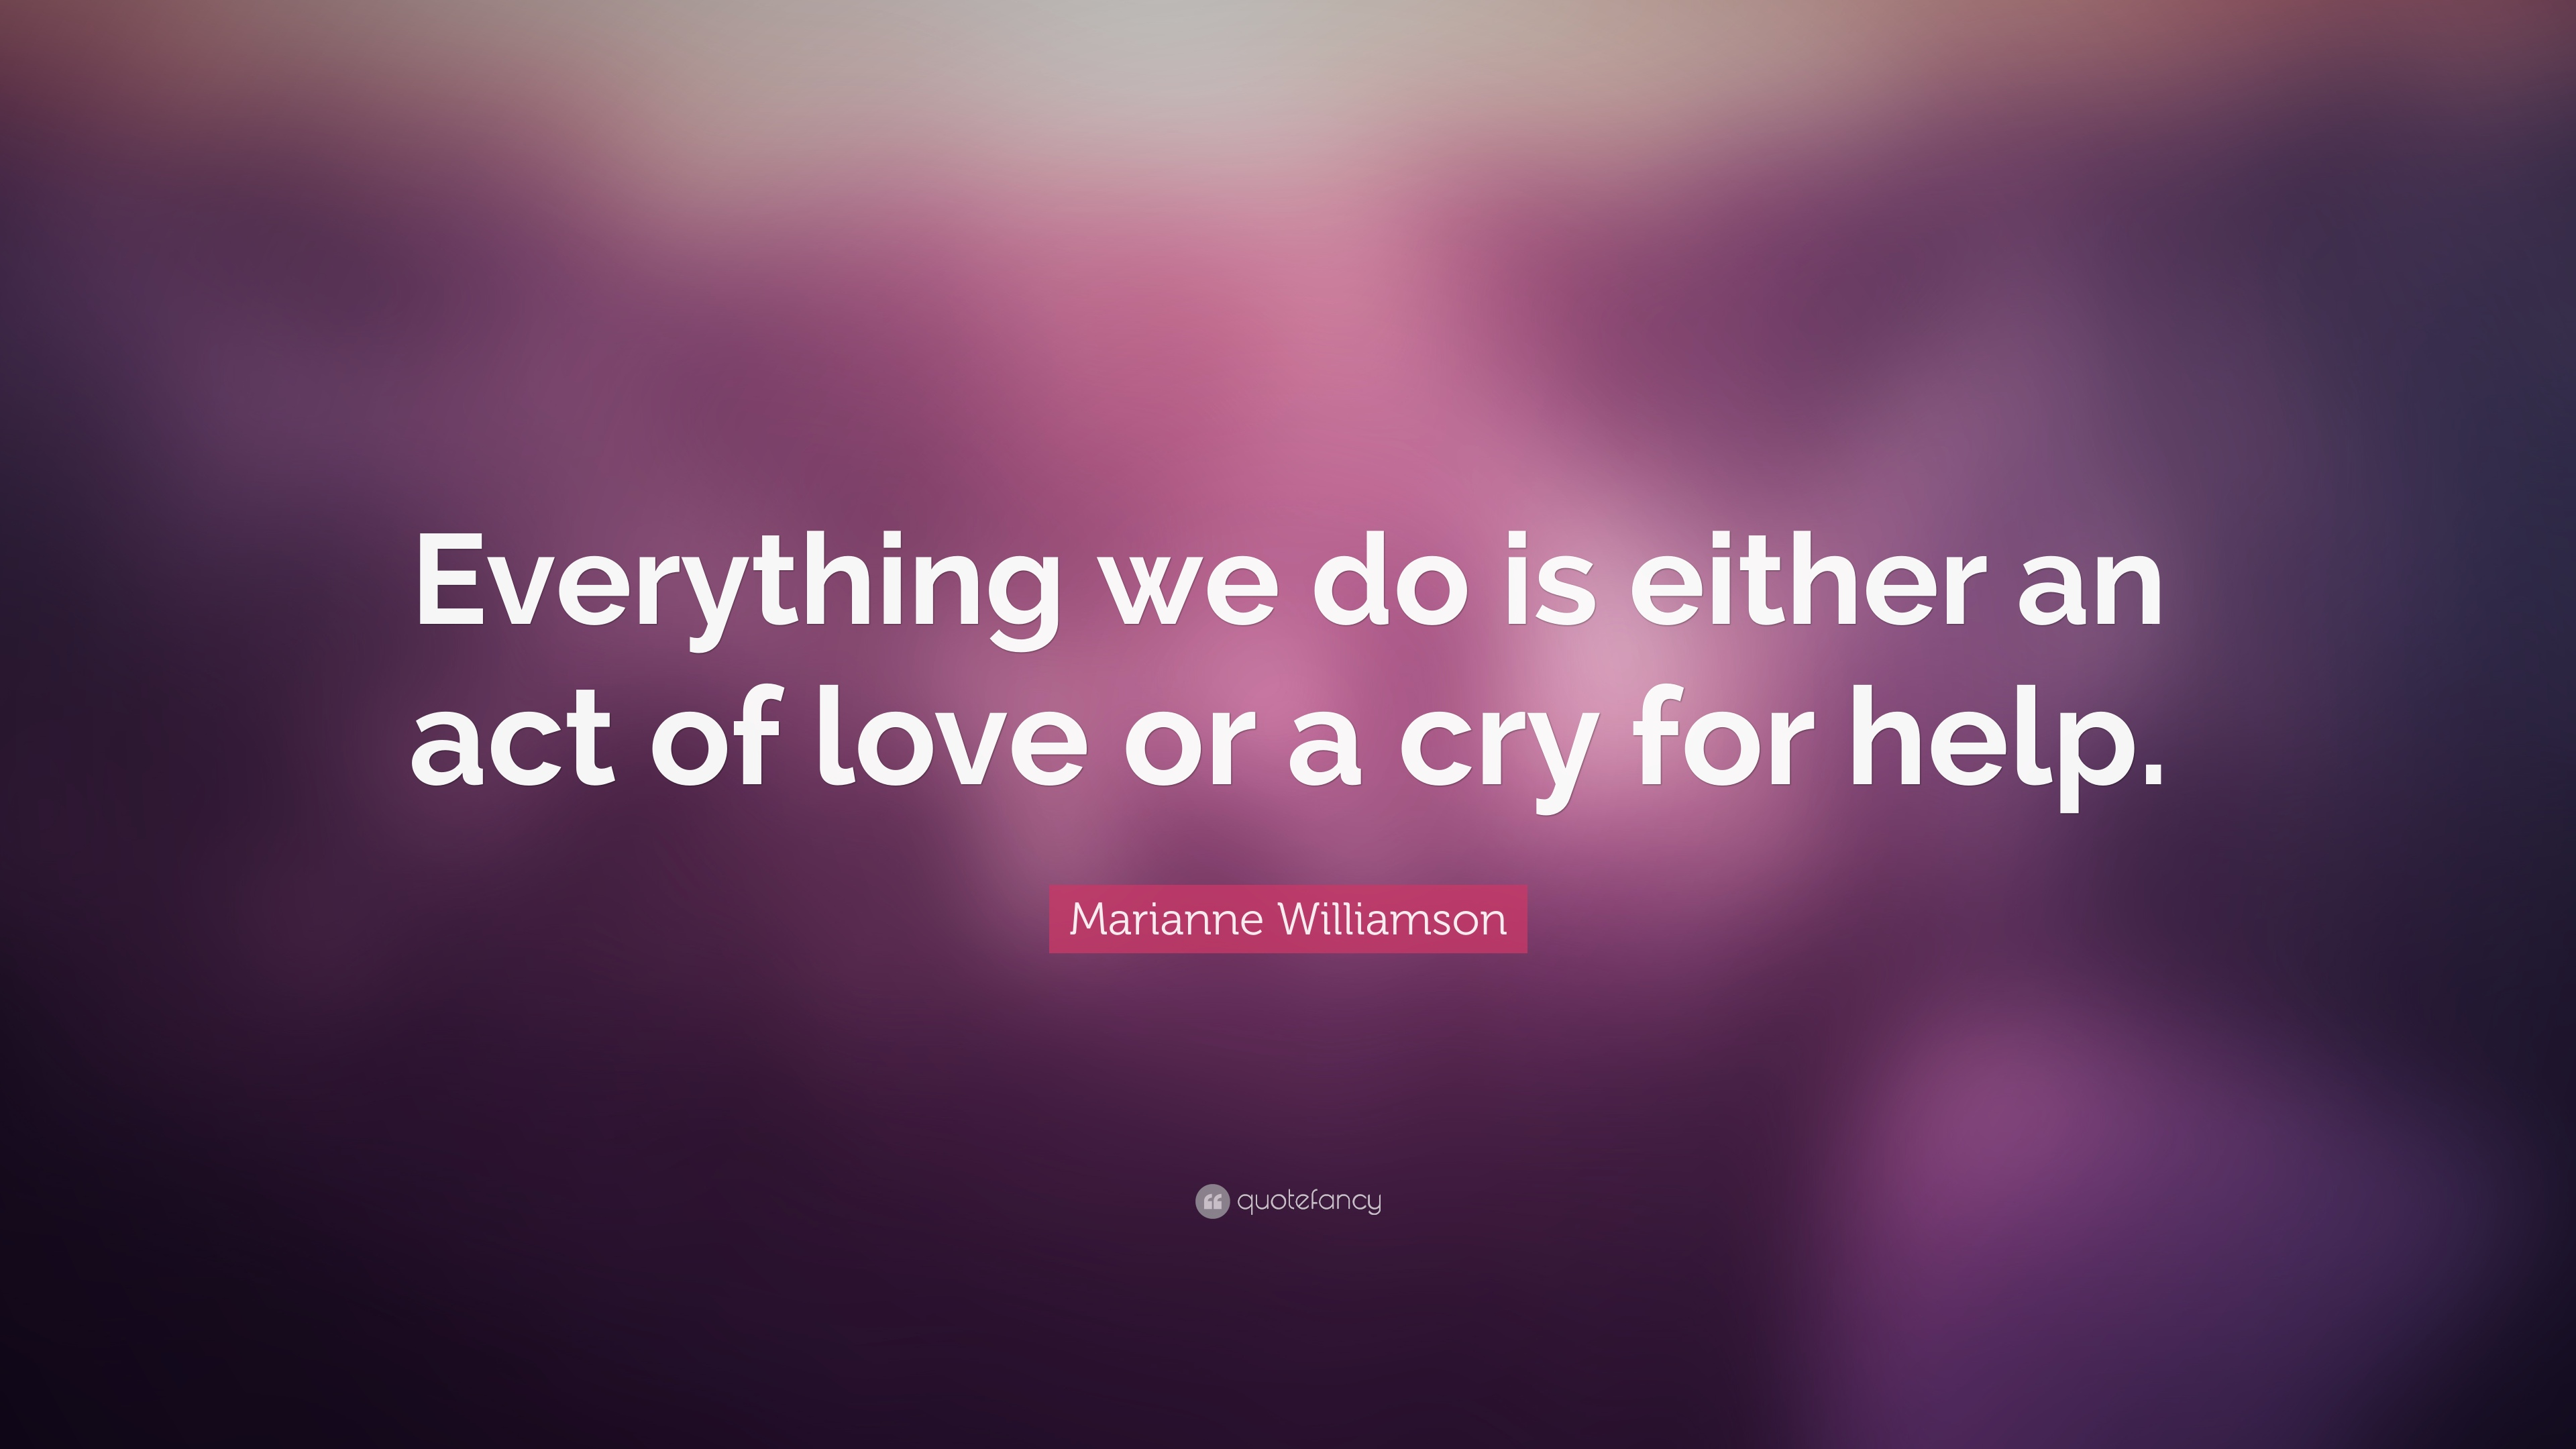 Marianne Williamson Quote: U201cEverything We Do Is Either An Act Of Love Or A